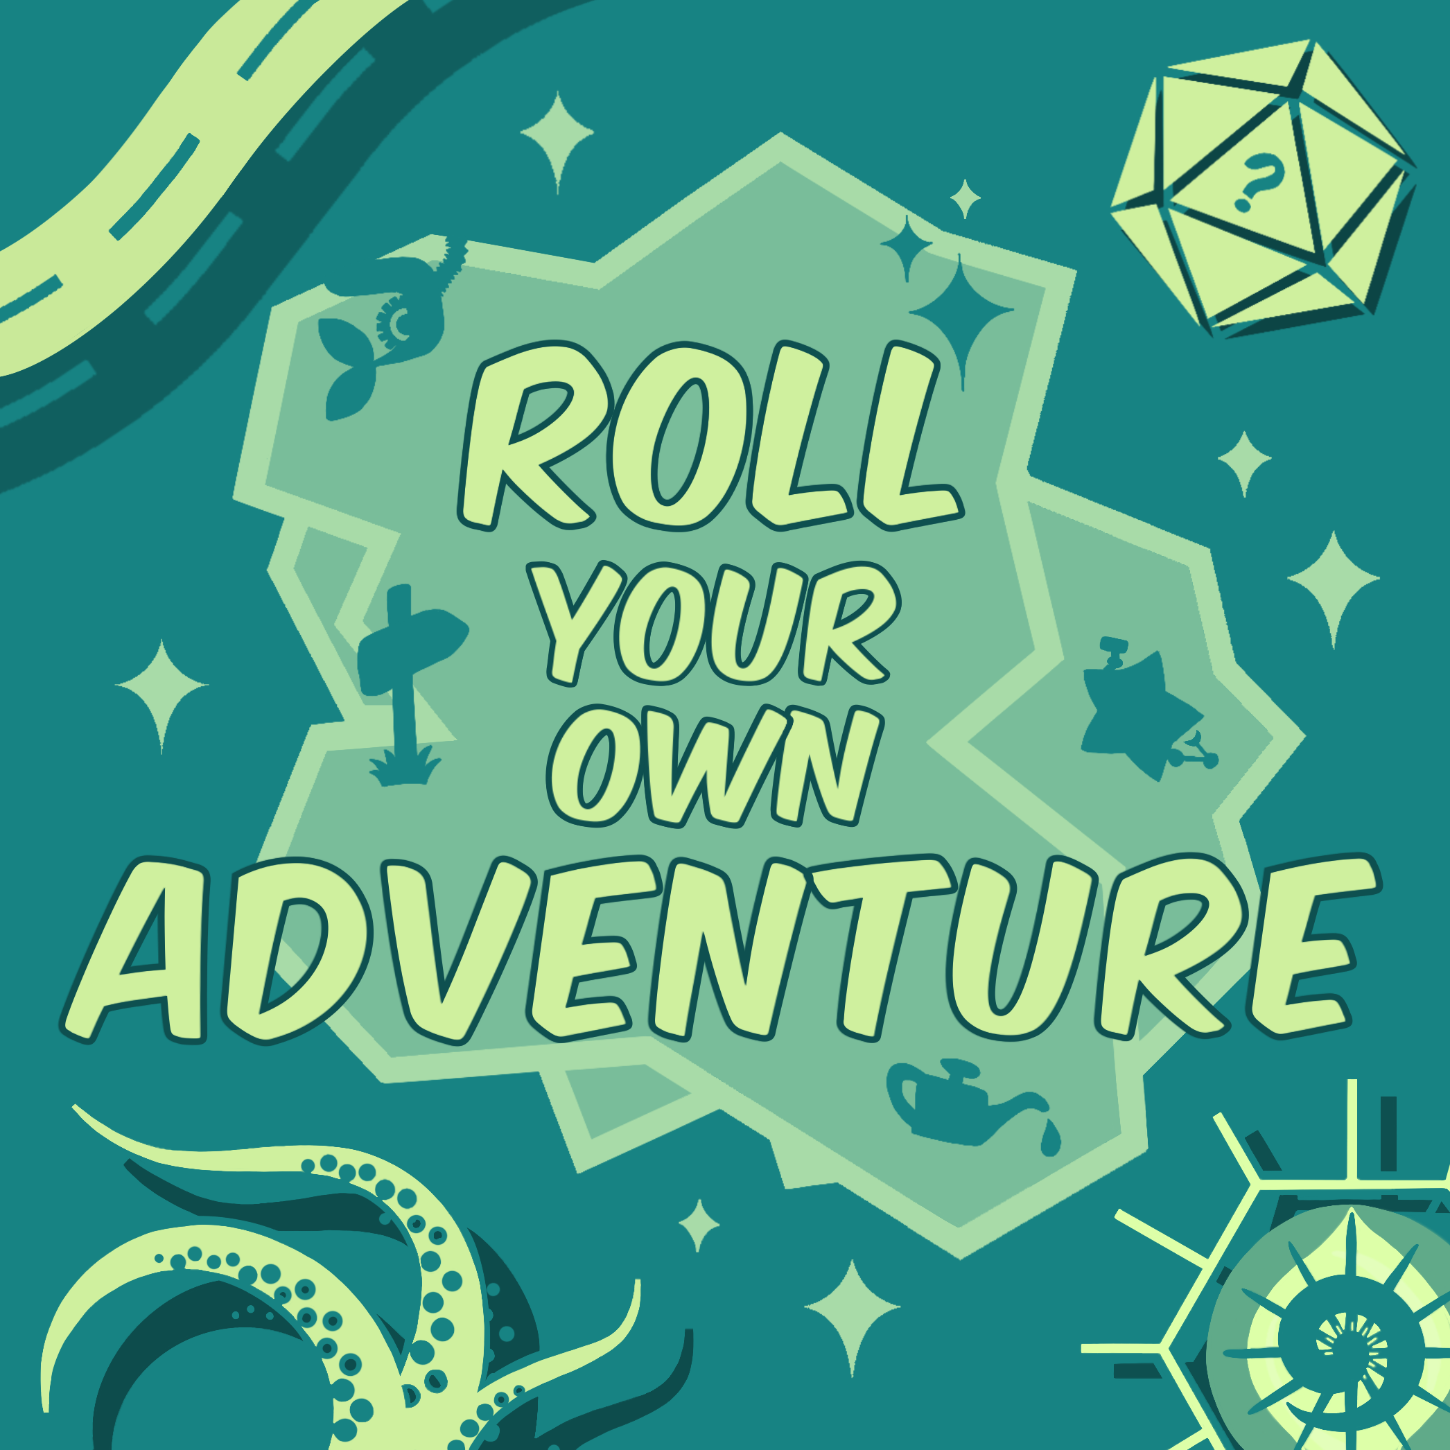 Welcome to Roll Your Own Adventure